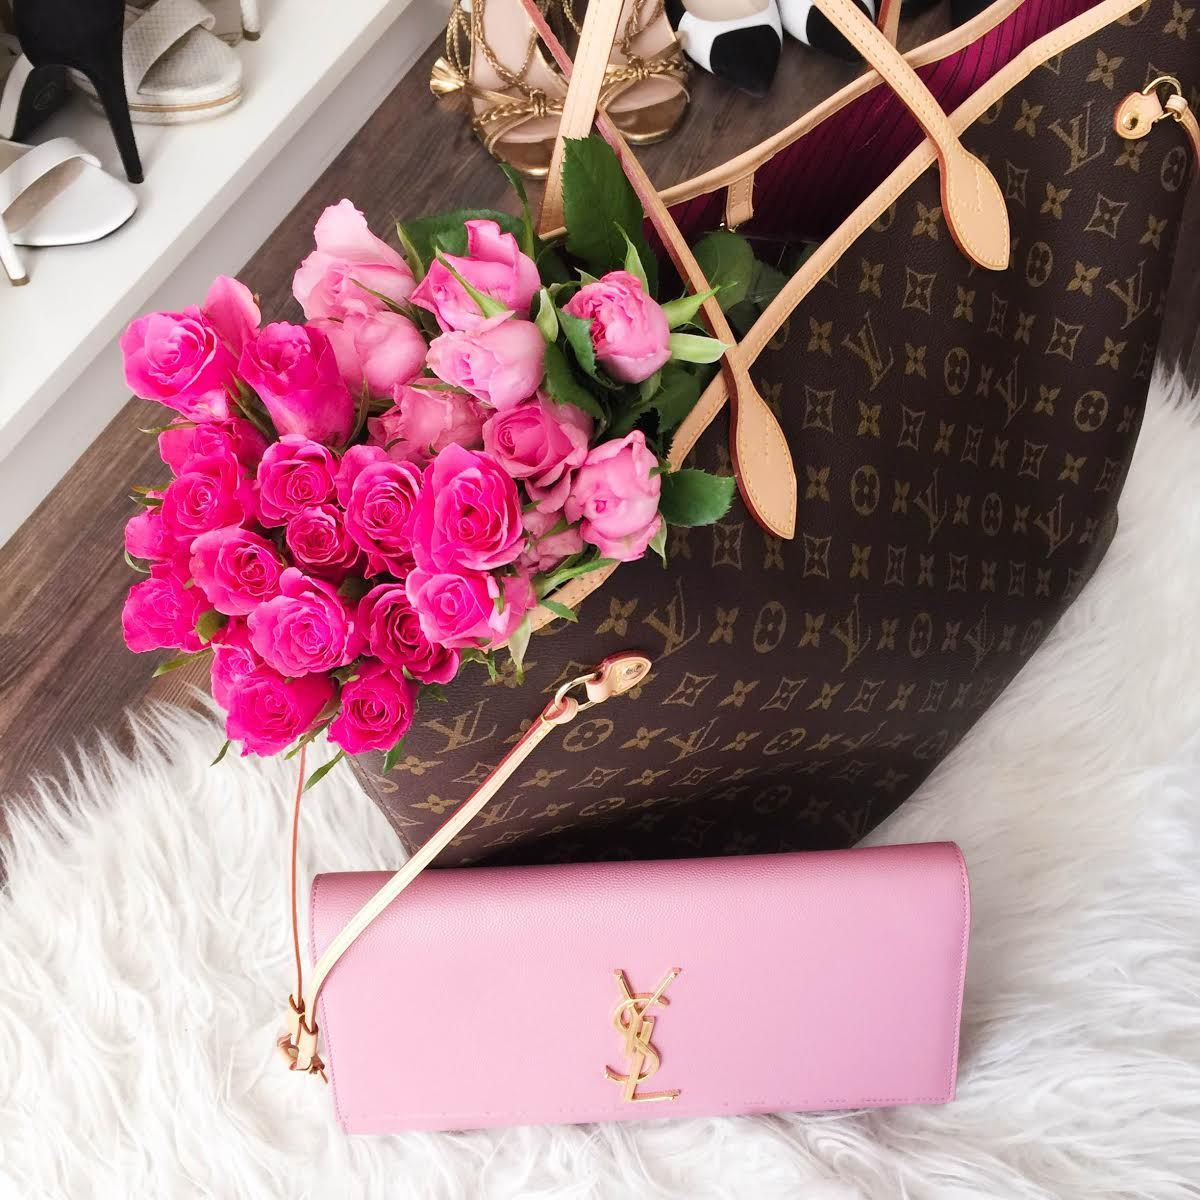 Insta Inspiration Flowers Vuitton Bag Louis Vuitton